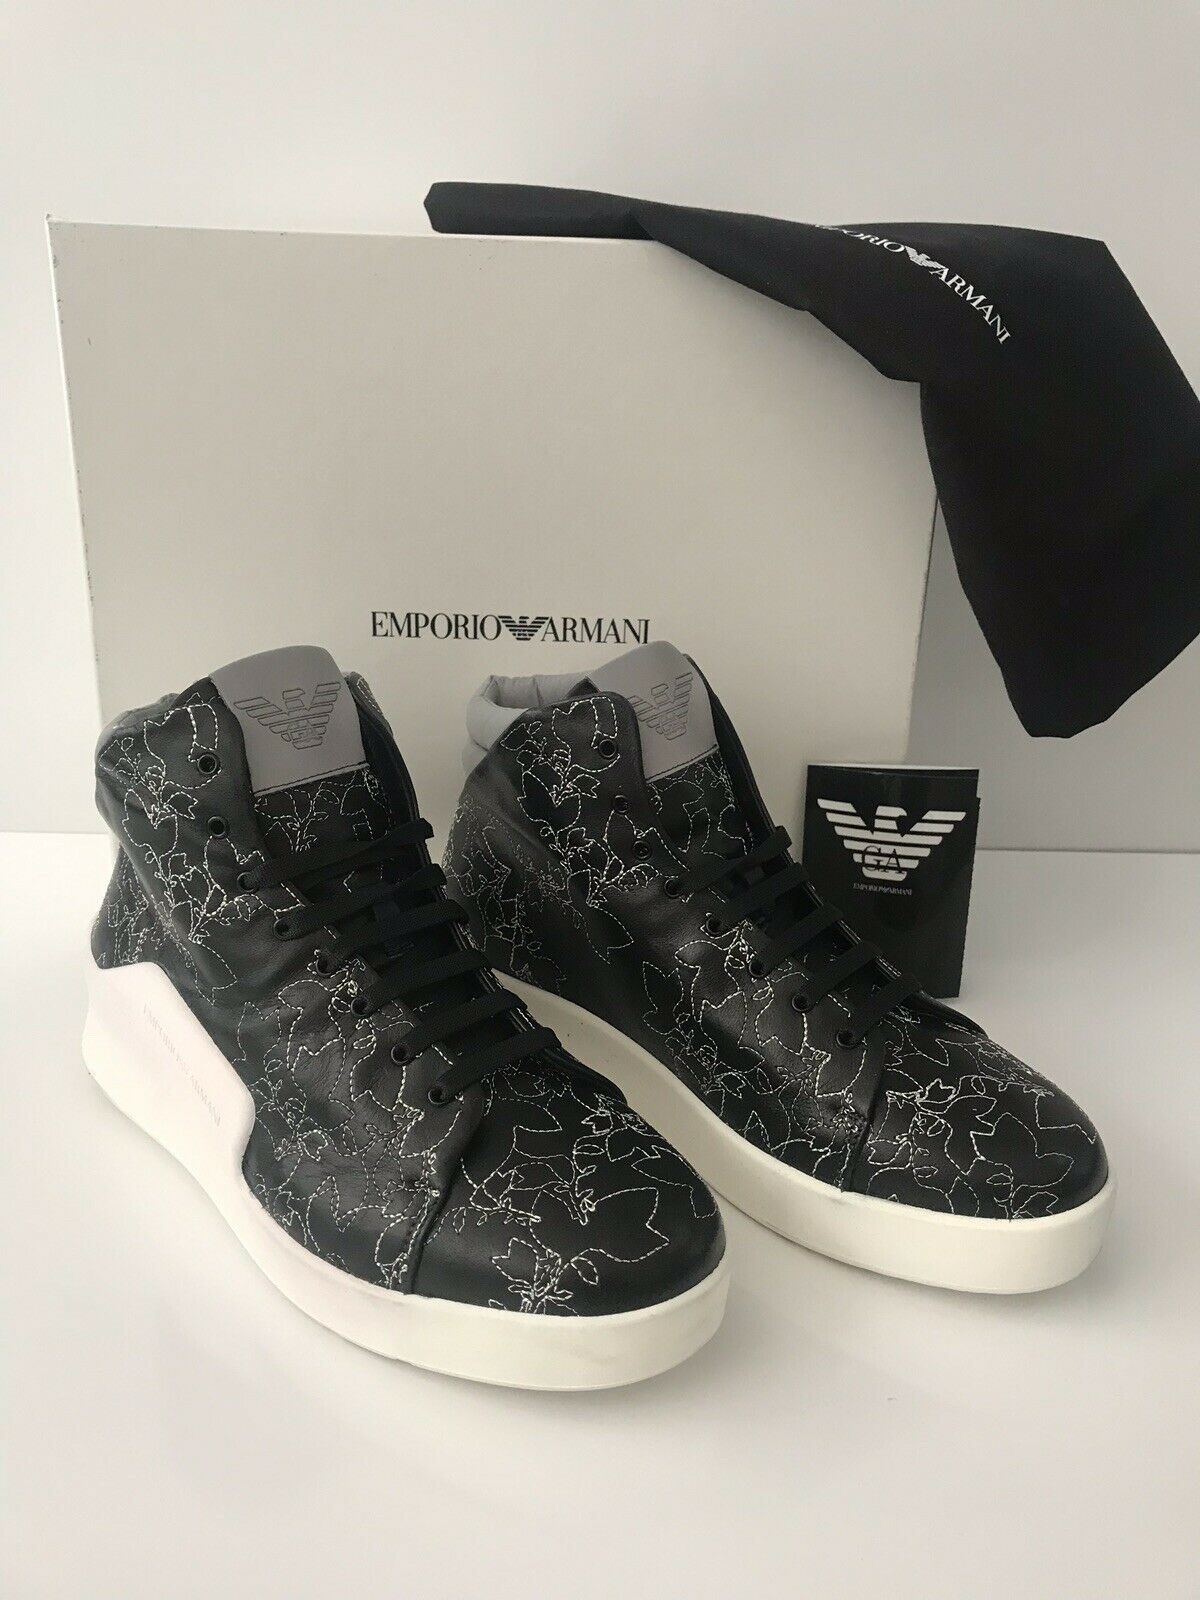 NIB $745 Emporio Armani Men's Floral Hi-Top Leather Sneakers Black 12 US